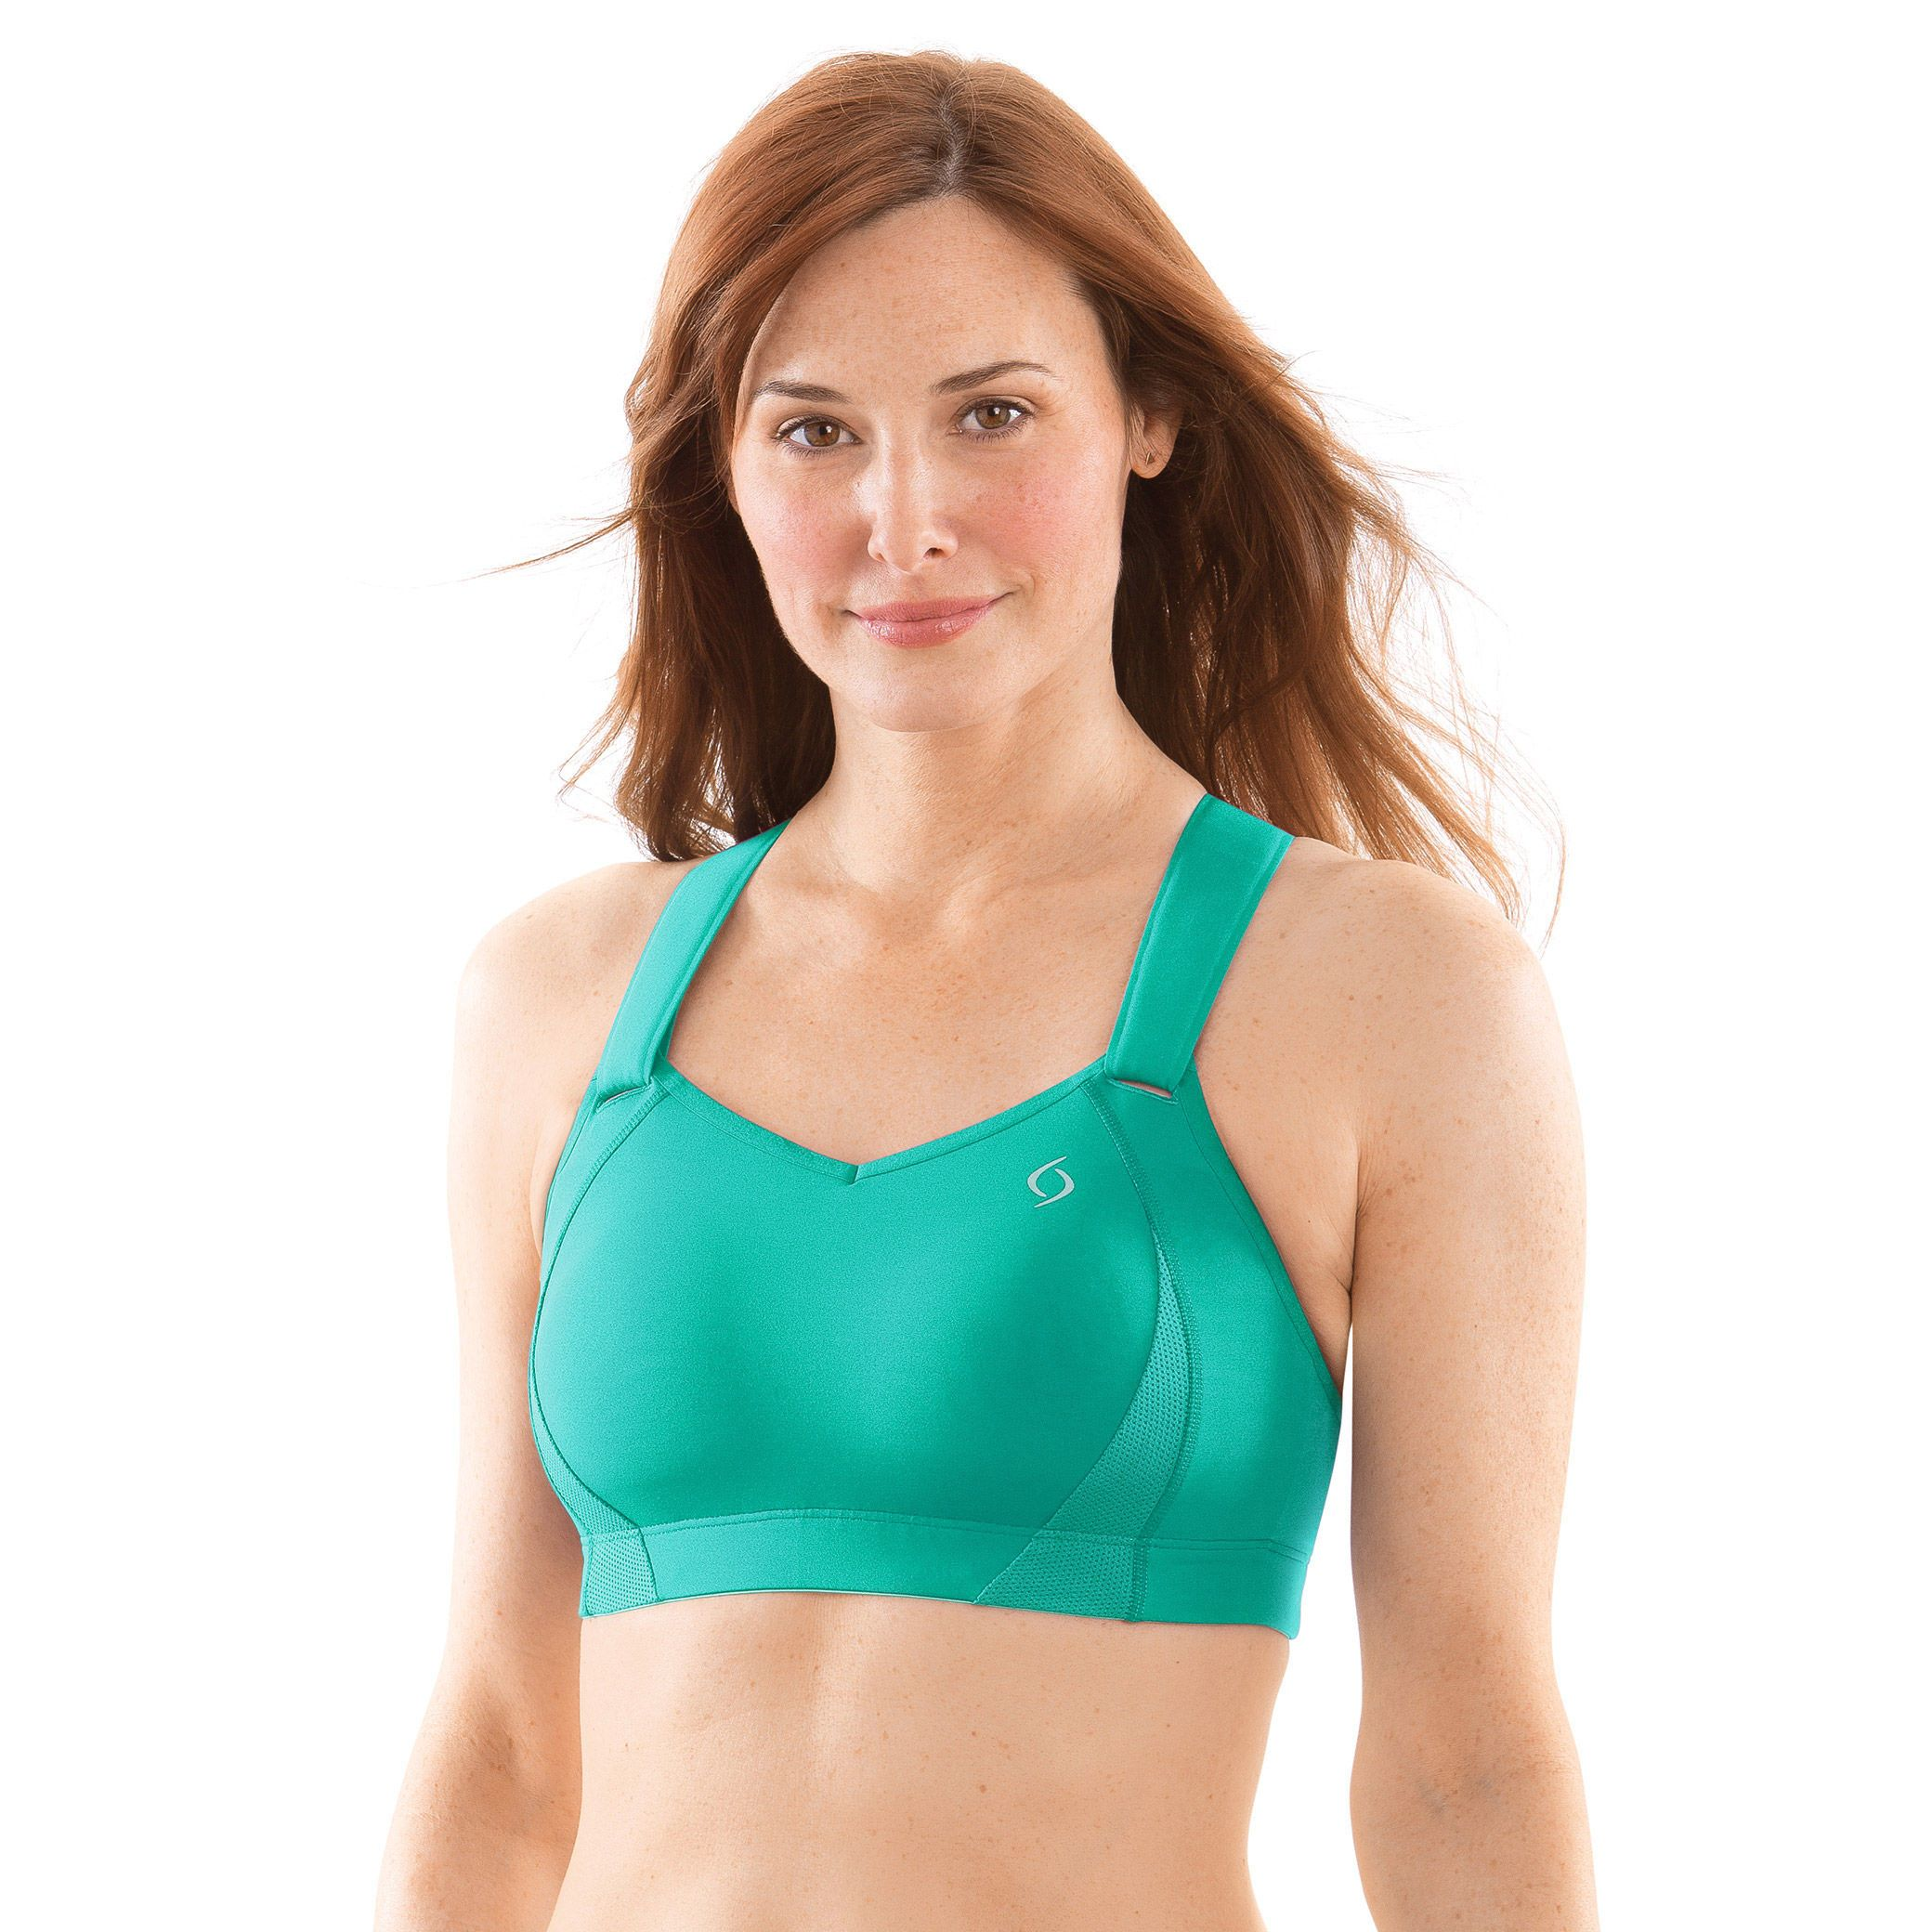 49e0e4b4c9dc8 Juno sports bra | Moving Comfort - Video at 1:36 describes how hard it is  to put on.